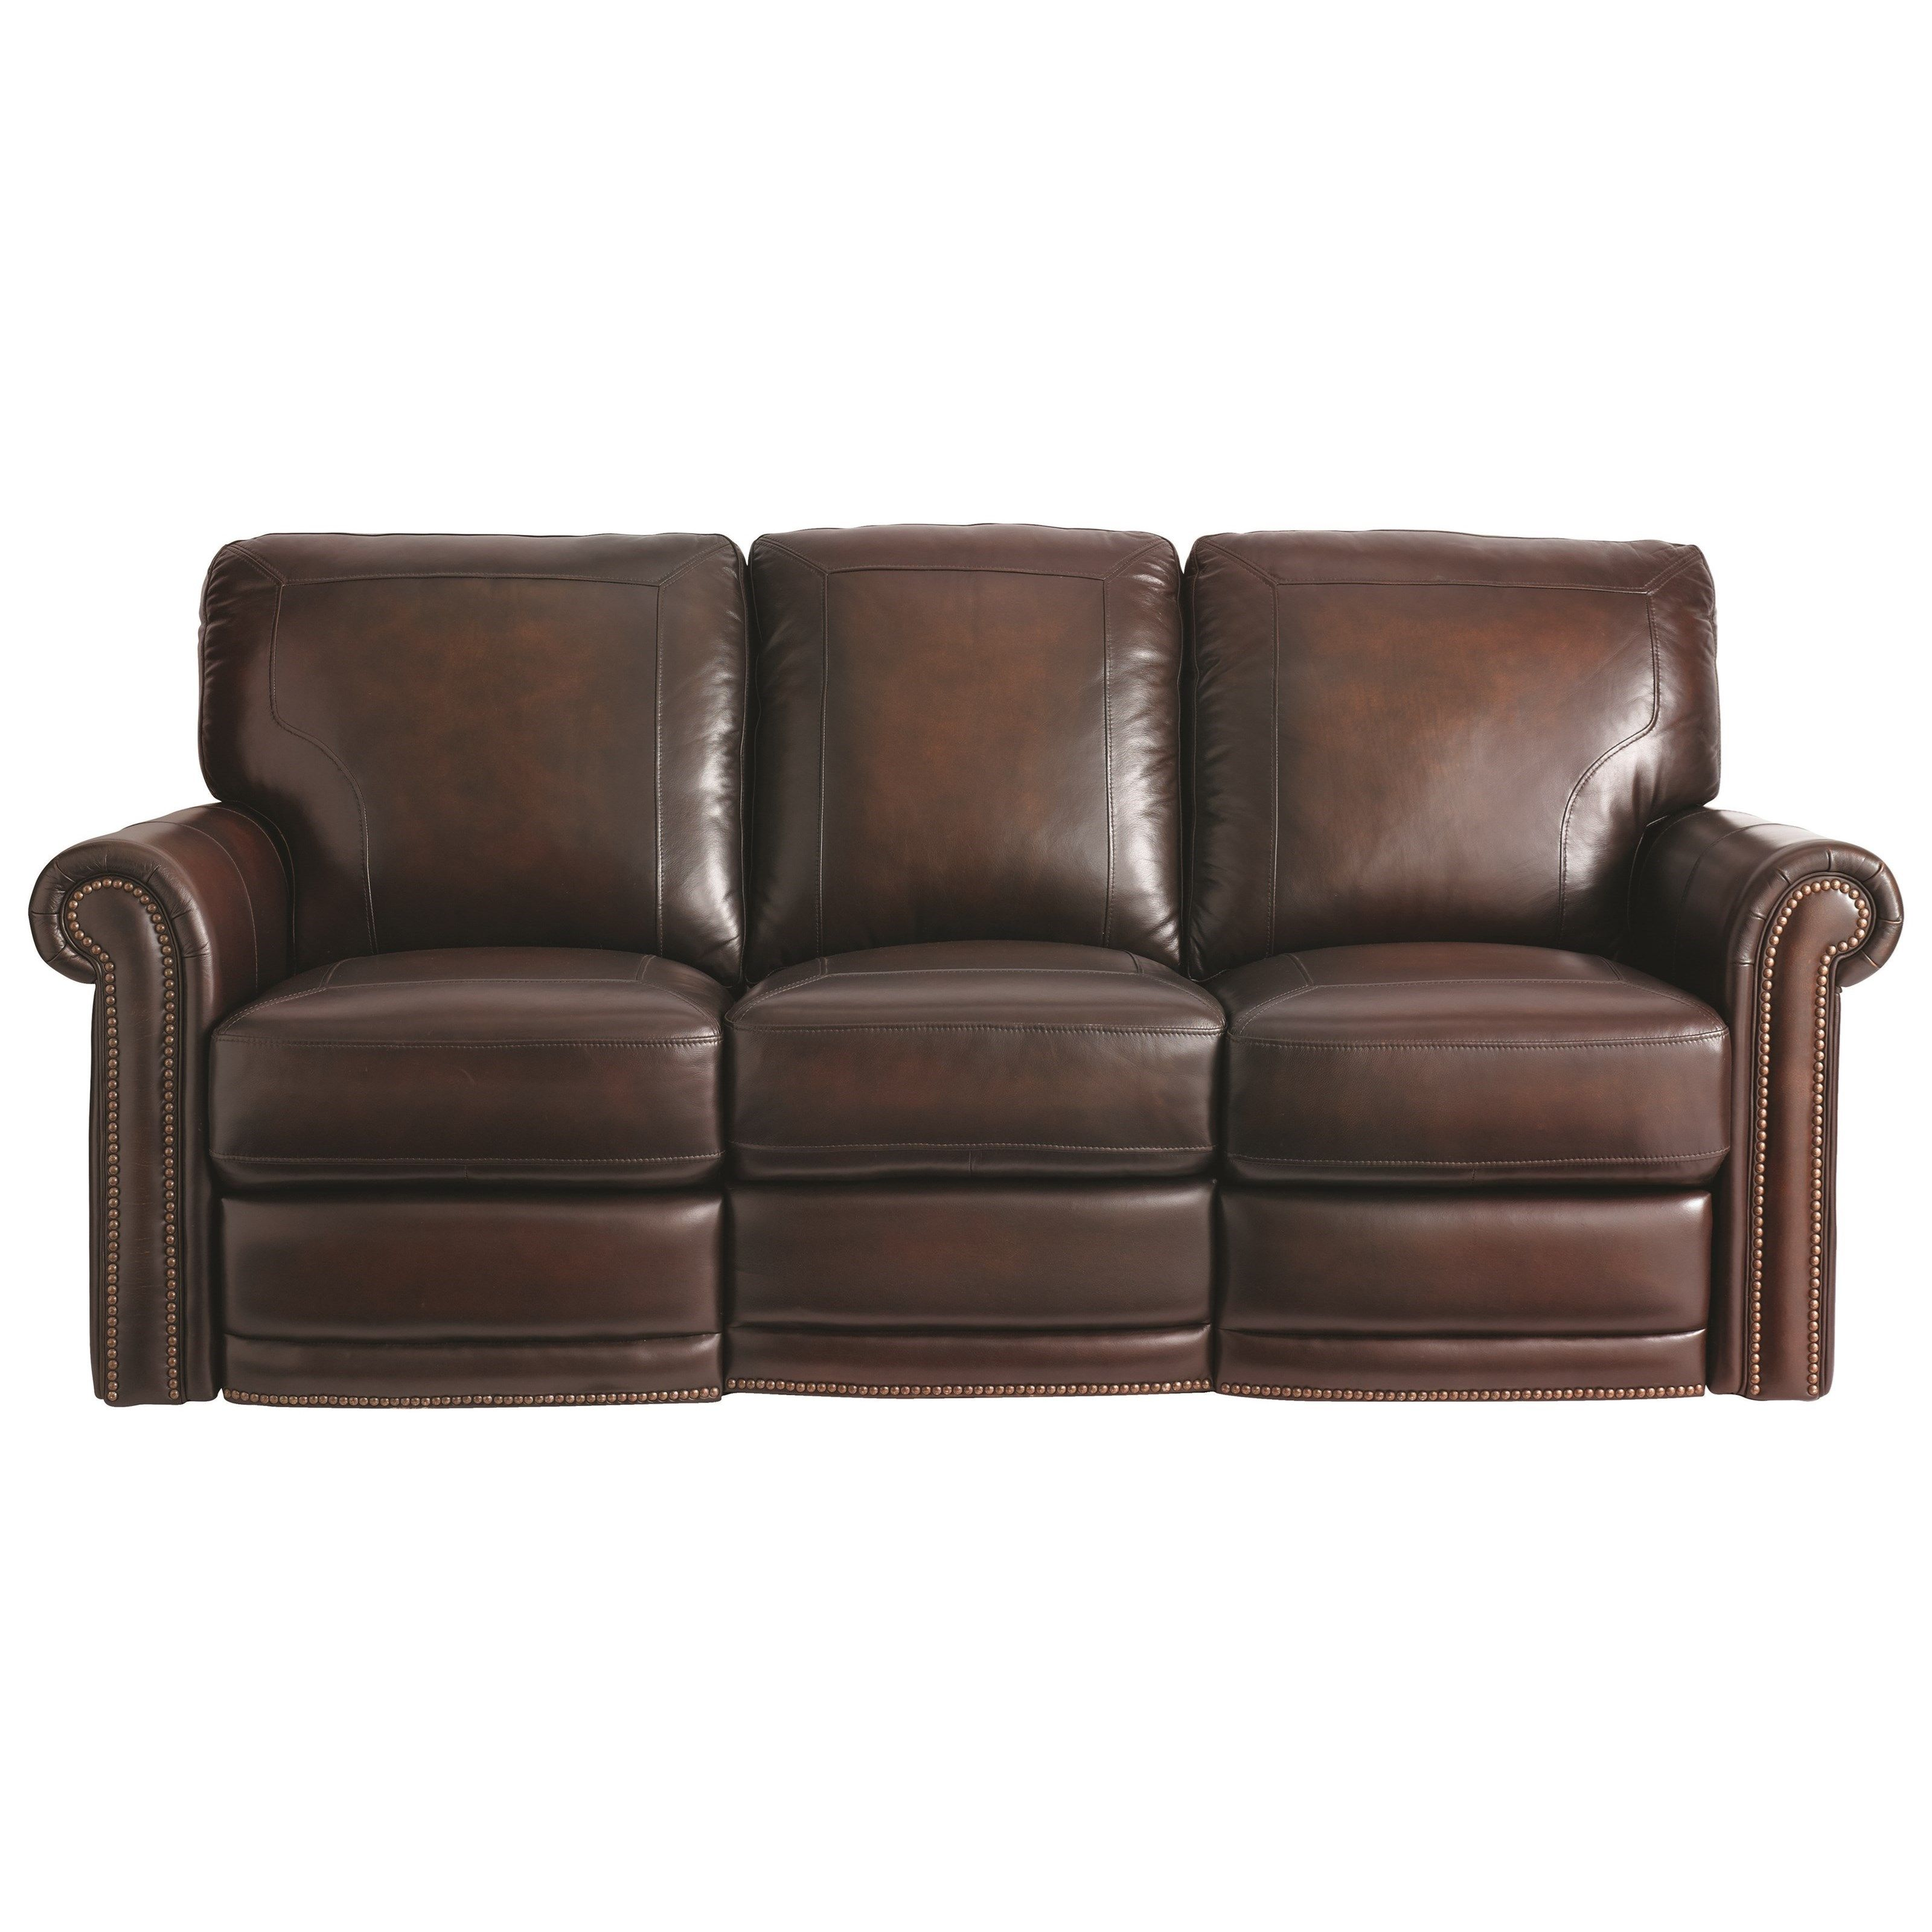 Room Leather Sofa Pin by